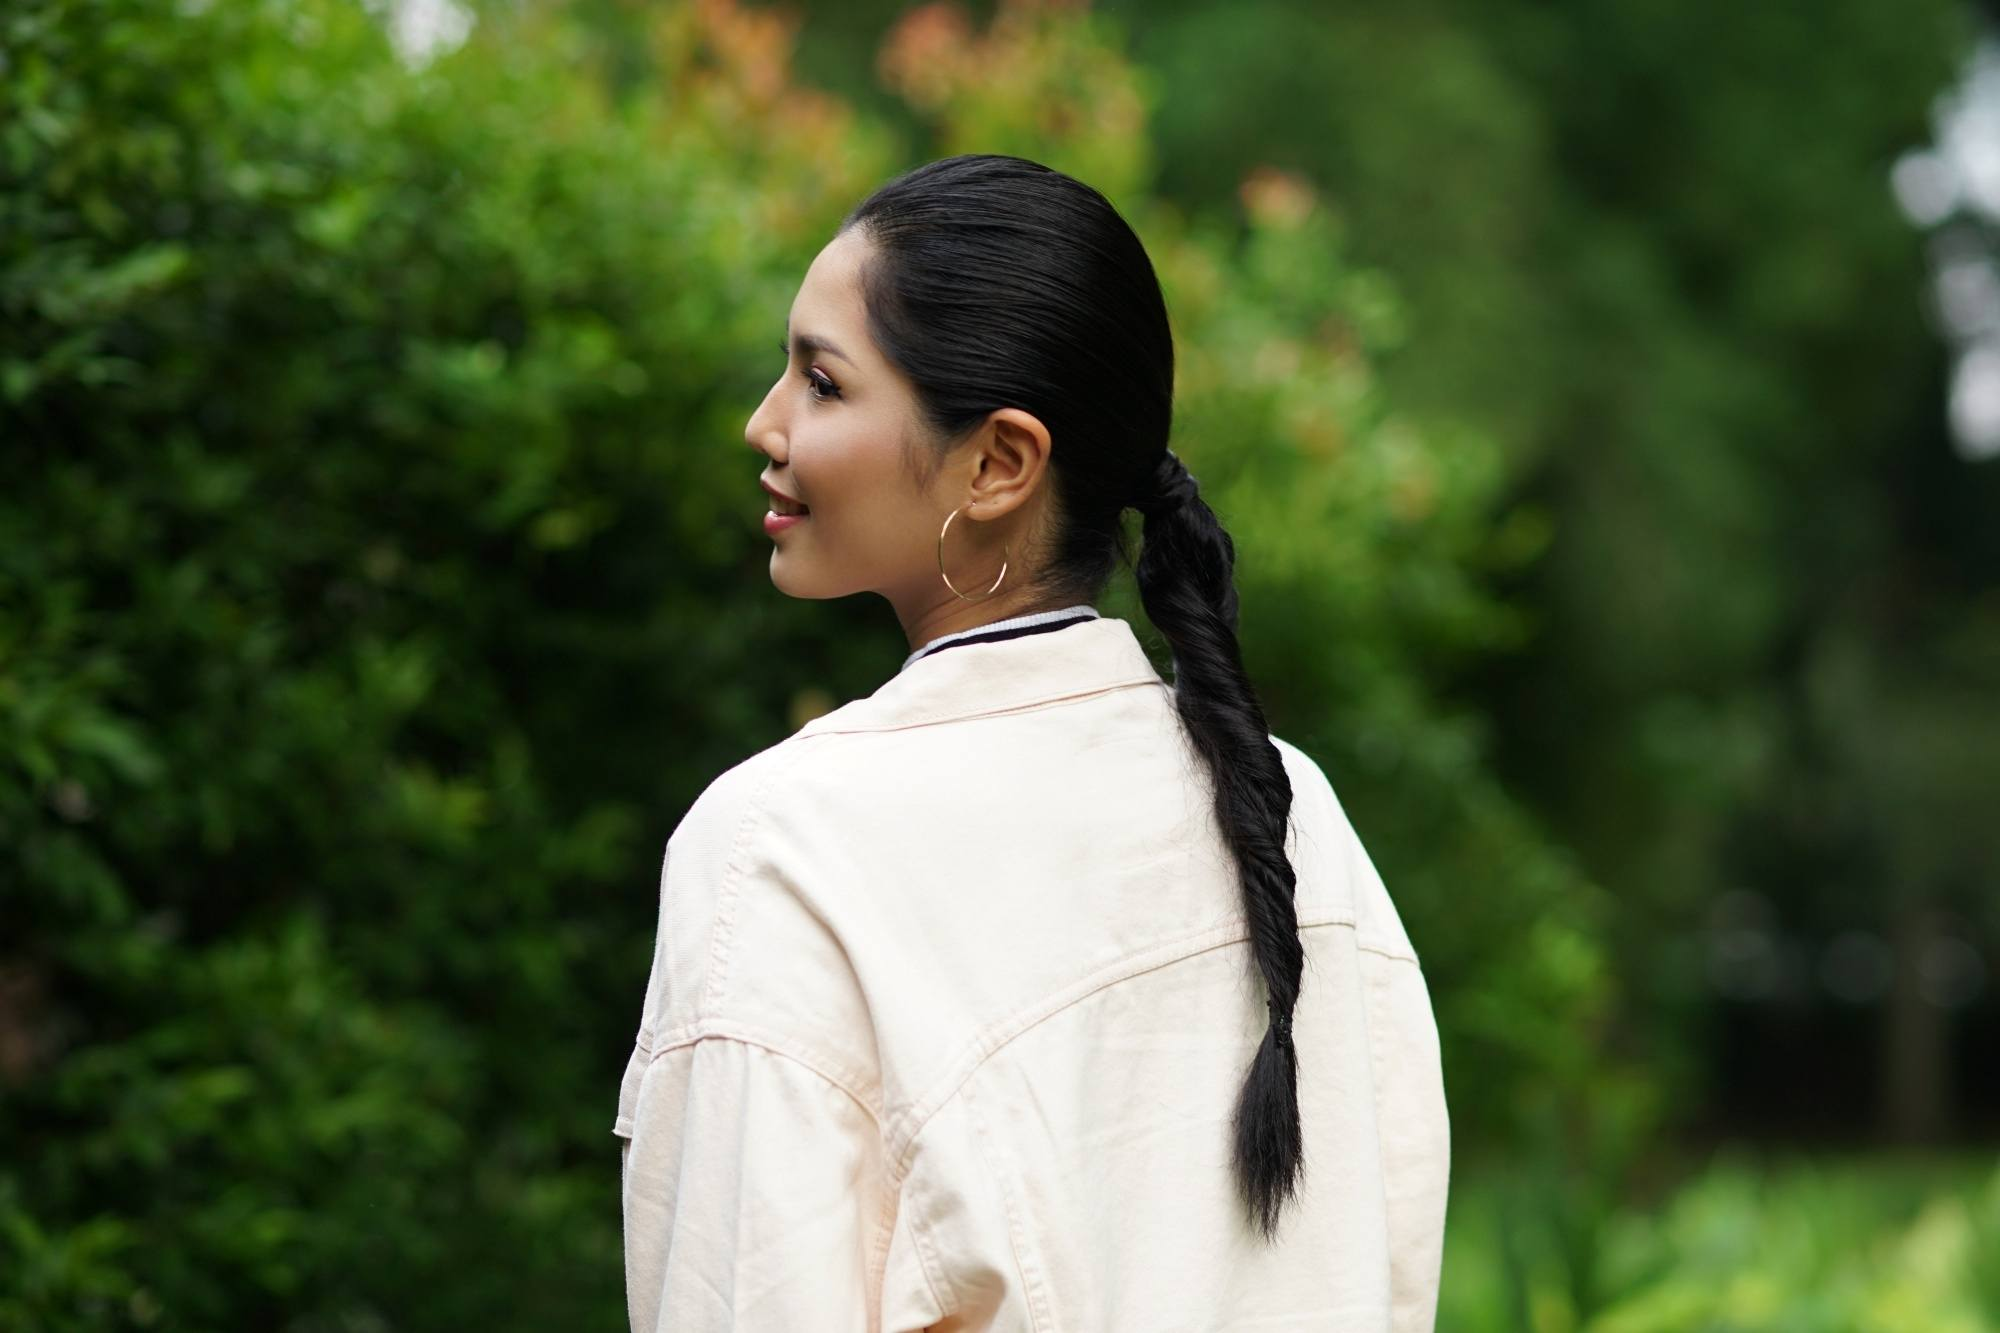 Hair types: Back shot of an Asian woman with long black hair in a double rope braid ponytail wearing a white jacket outdoors